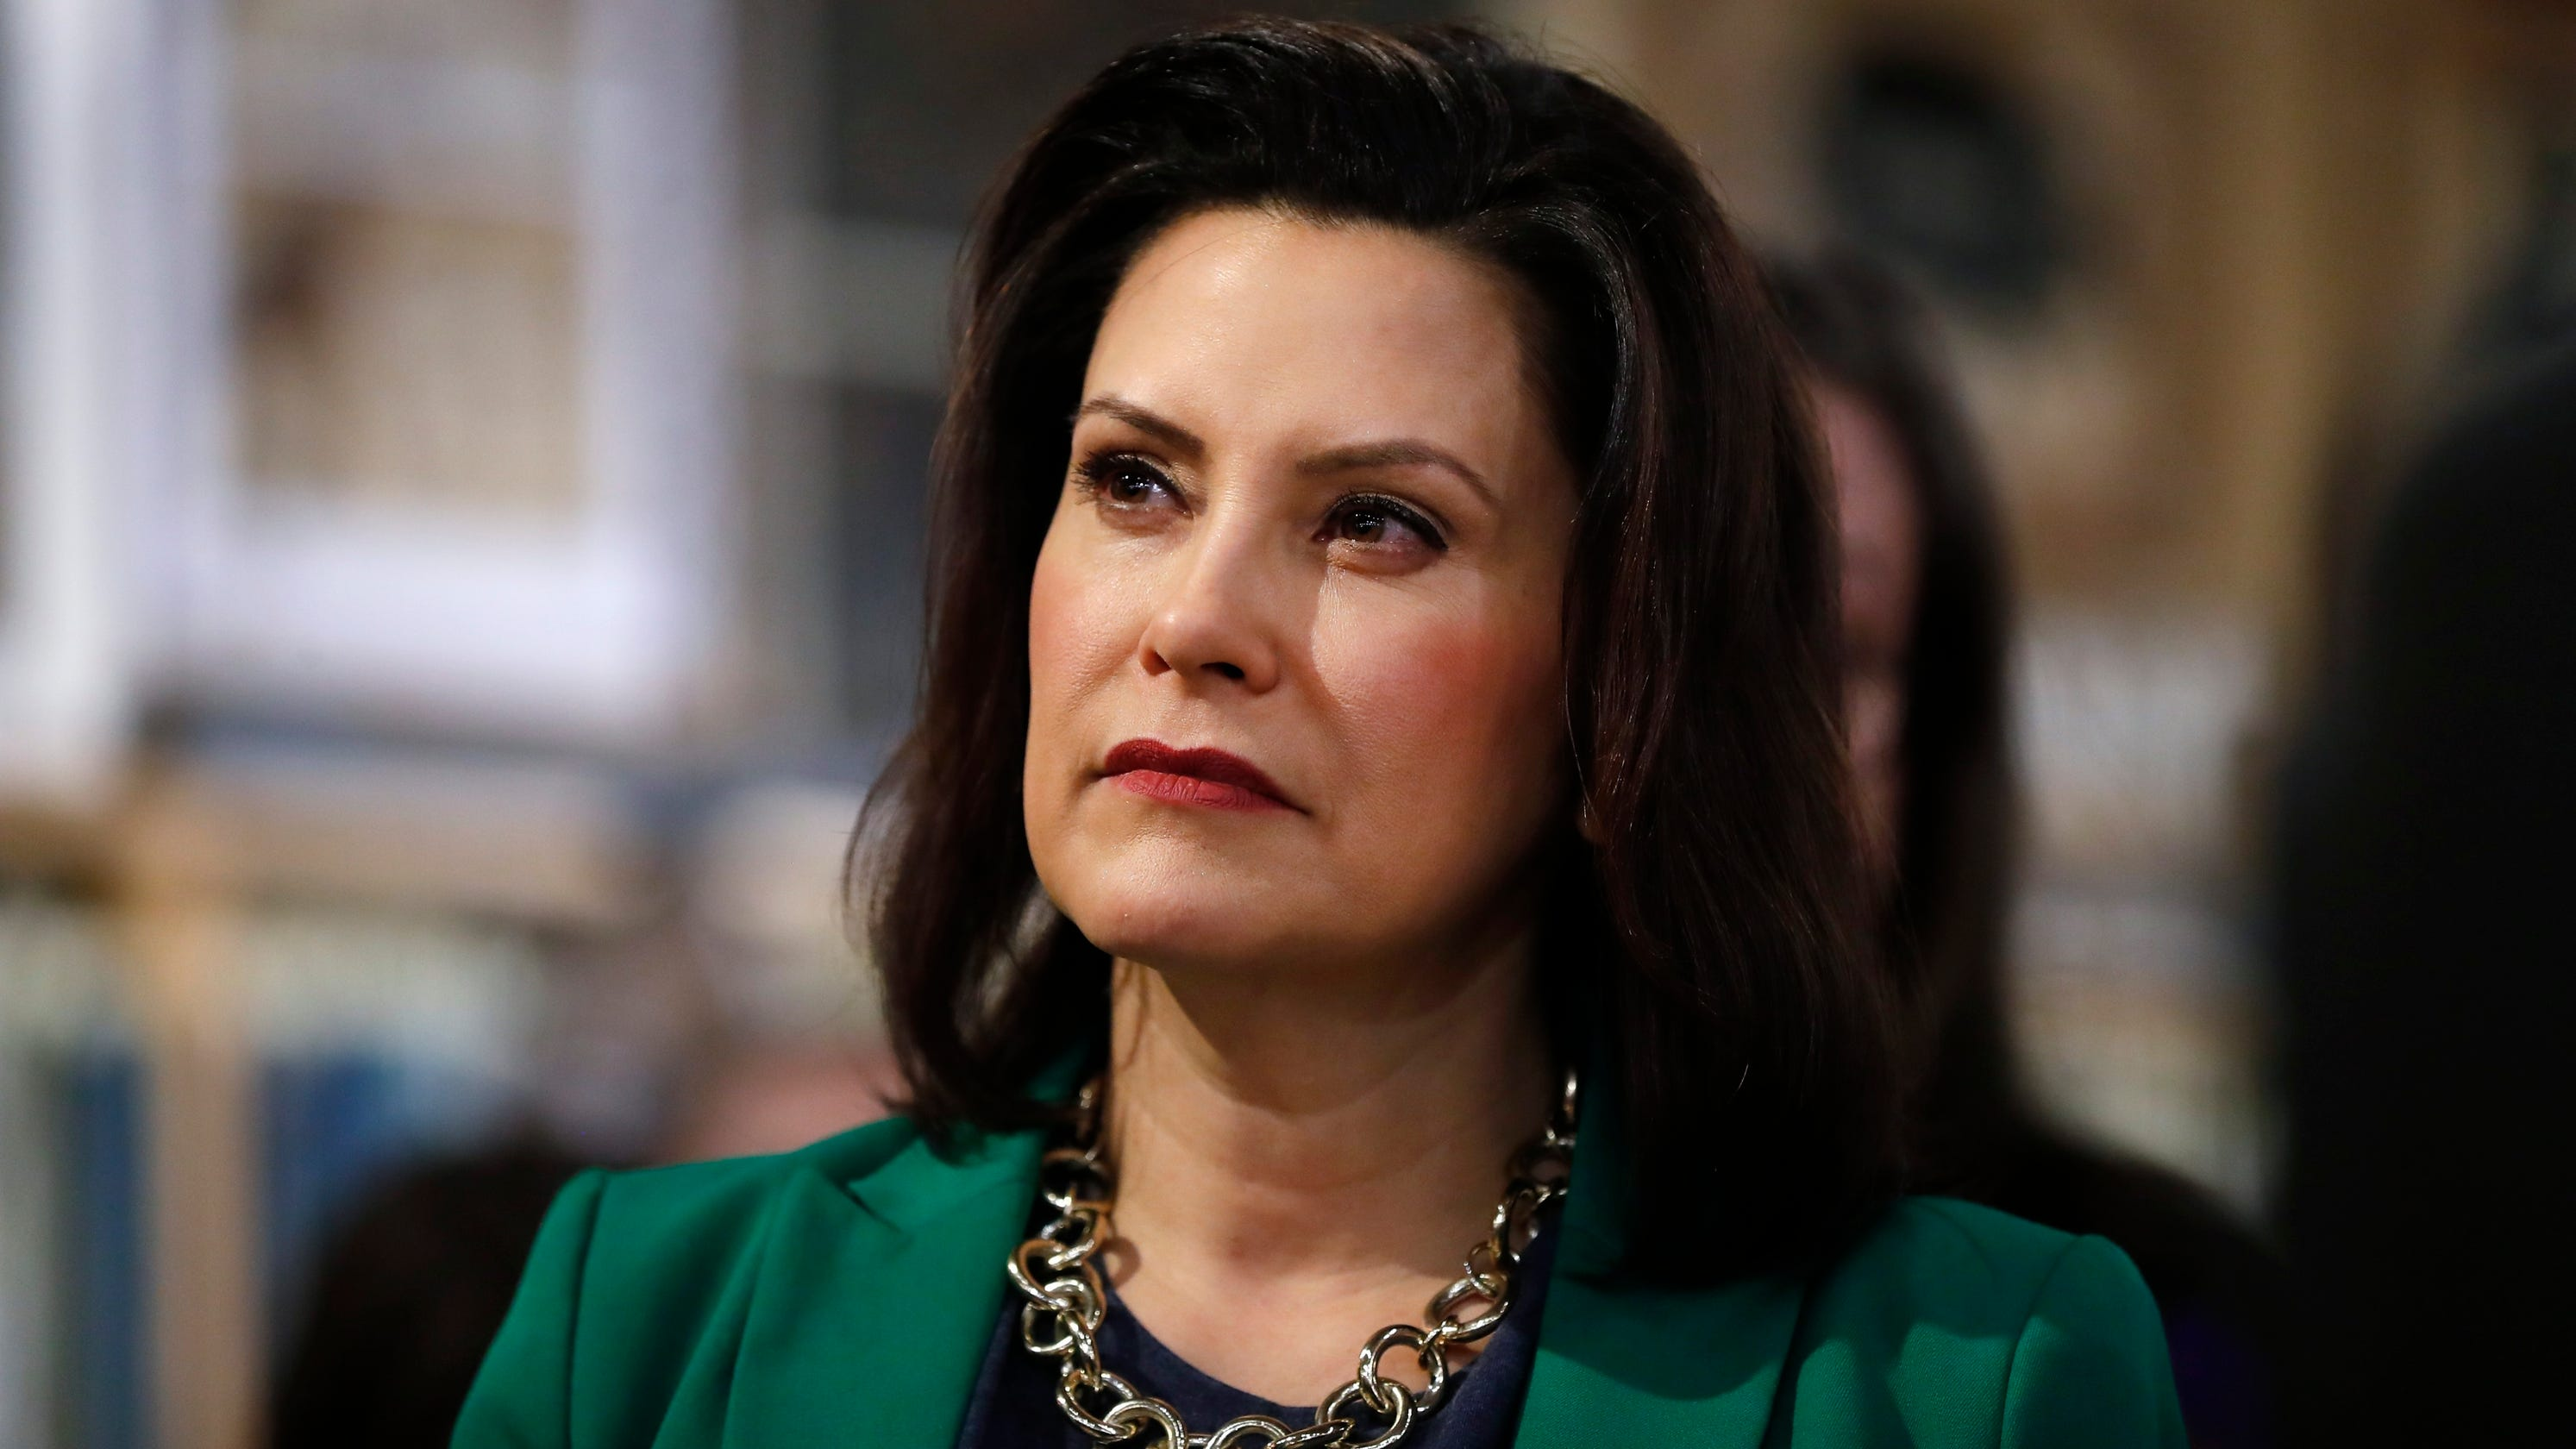 Builders lawsuit challenges Gretchen Whitmer's work rules